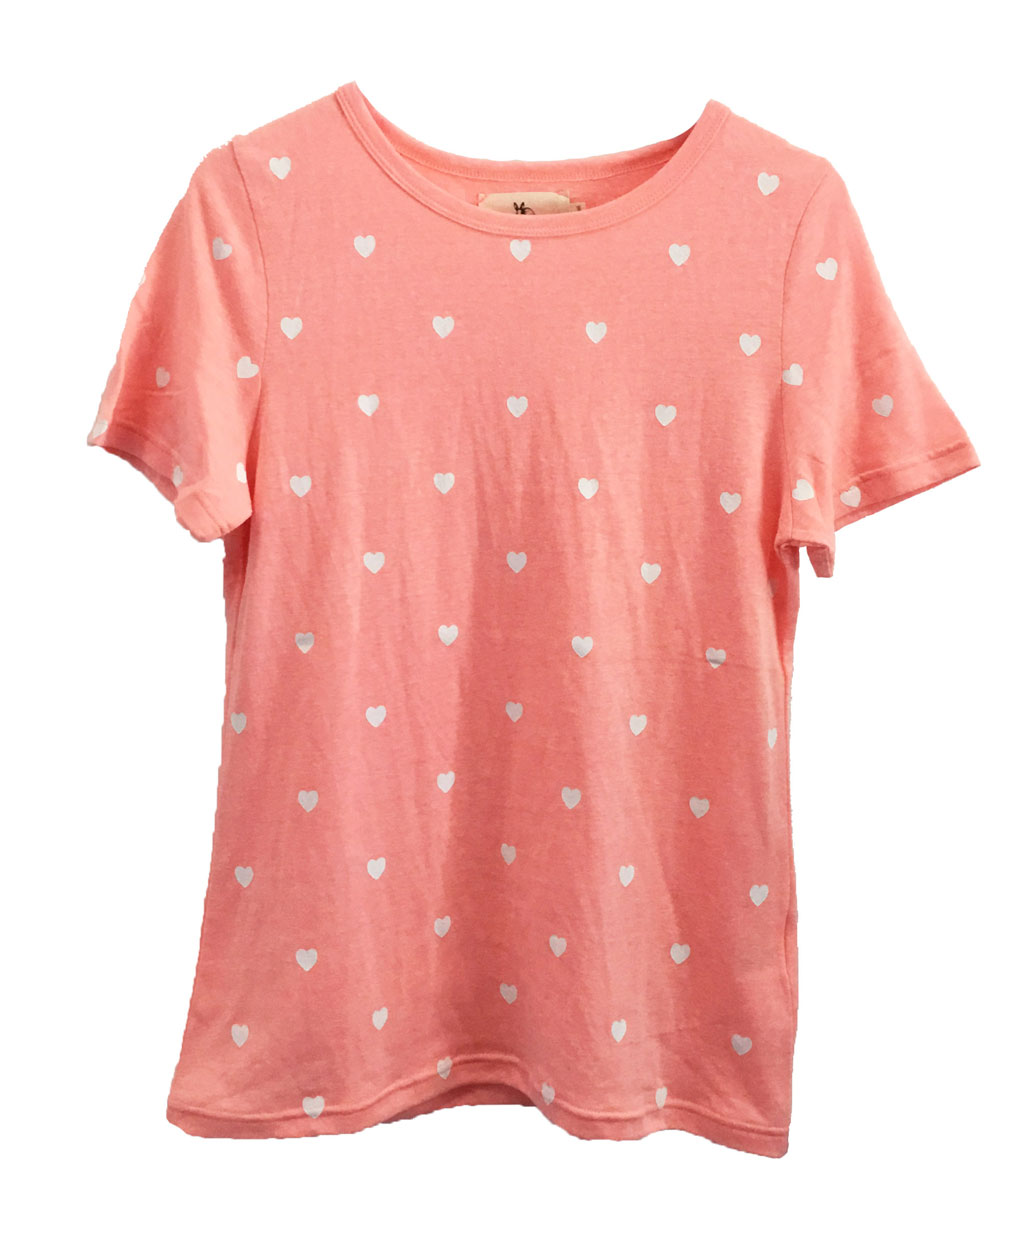 Mini heart cotton t shirt coral